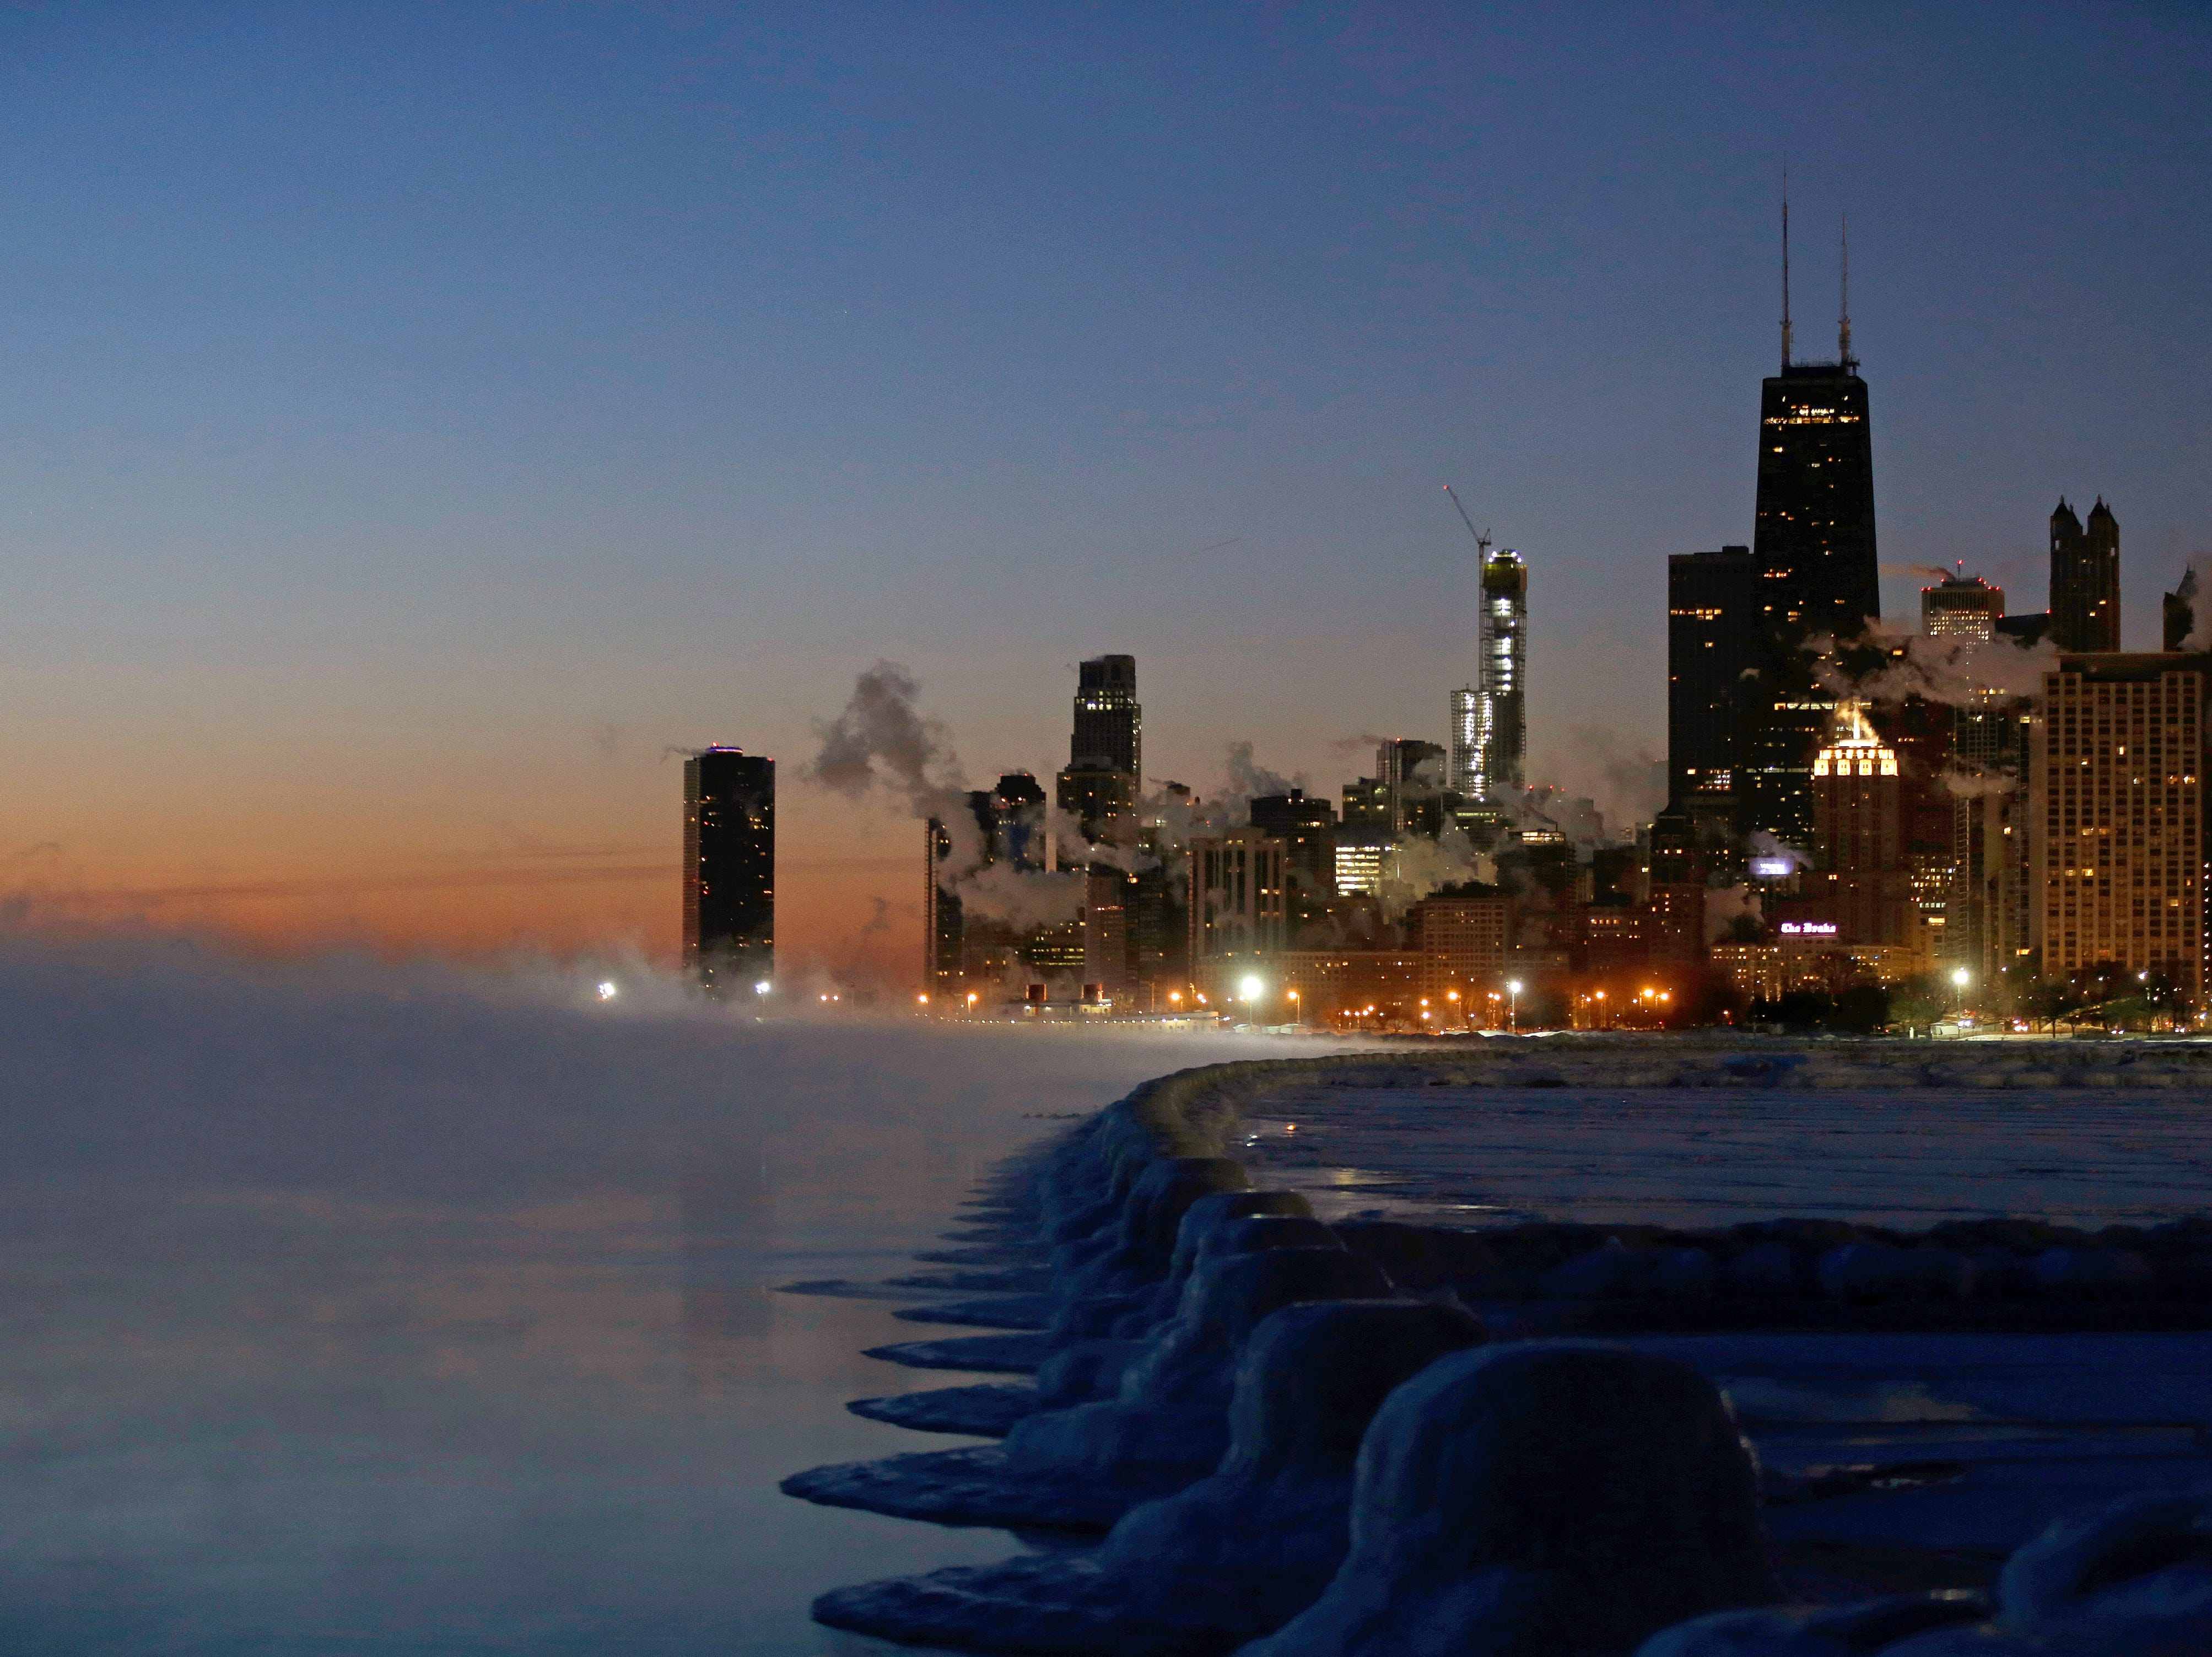 Ice forms along the shore of Lake Michigan before sunrise, Thursday, Jan. 31, 2019, in Chicago. The painfully cold weather system that put much of the Midwest into a historic deep freeze was expected to ease Thursday, though temperatures still tumbled to record lows in some places.